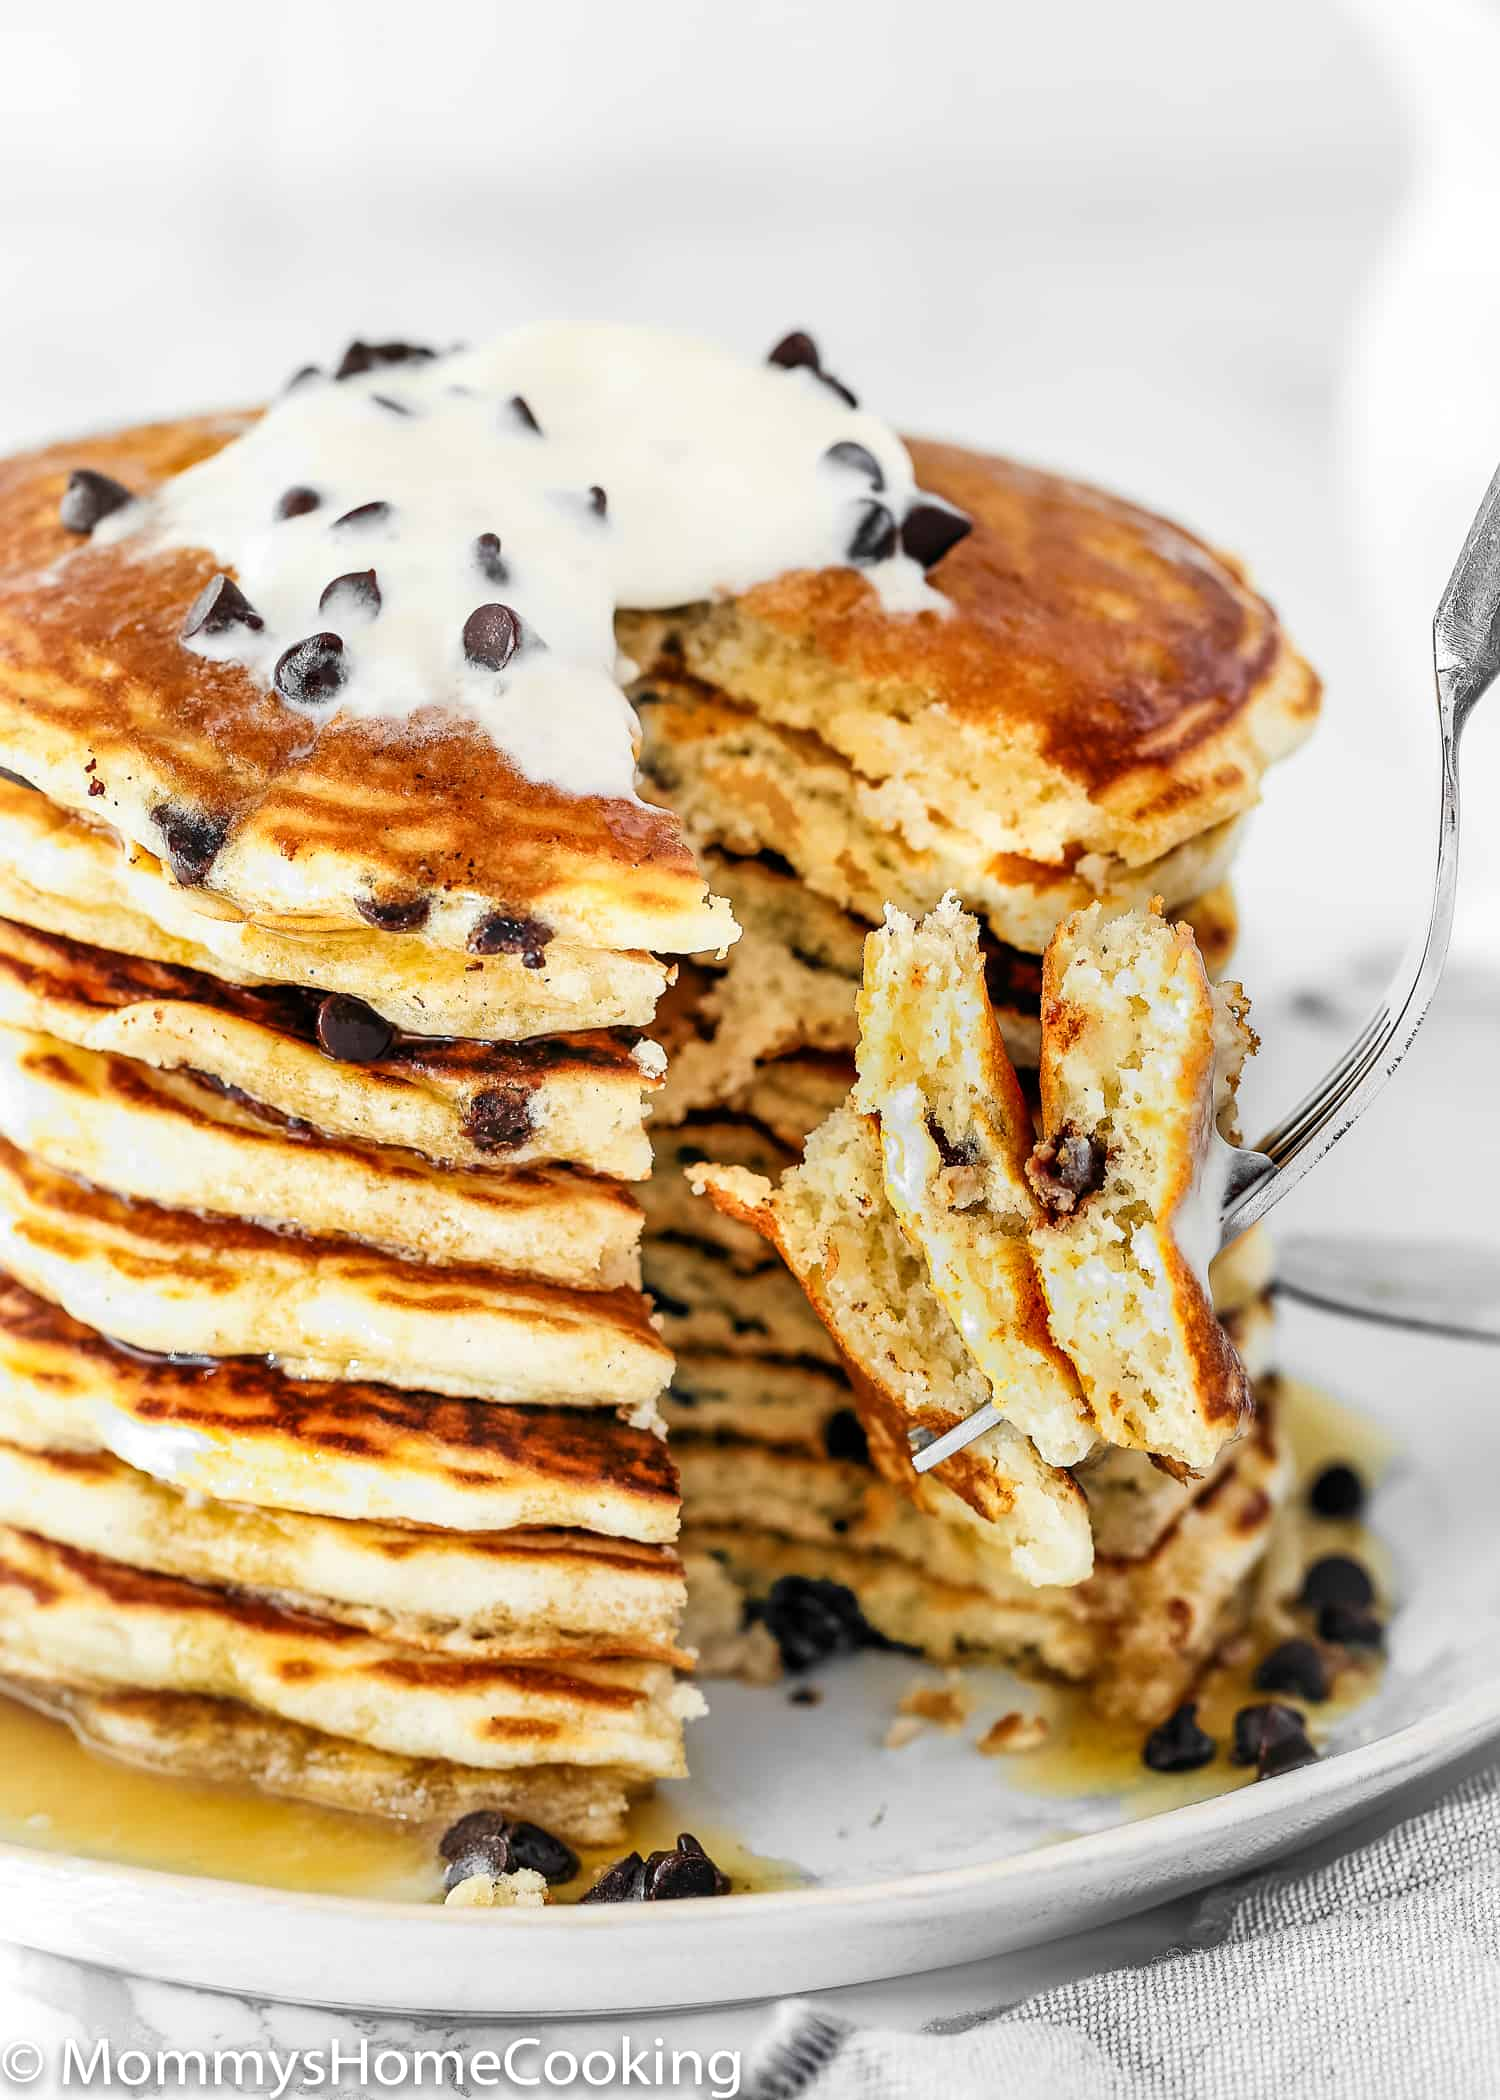 Easy Eggless Chocolate Chip Pancakes - Mommy's Home Cooking